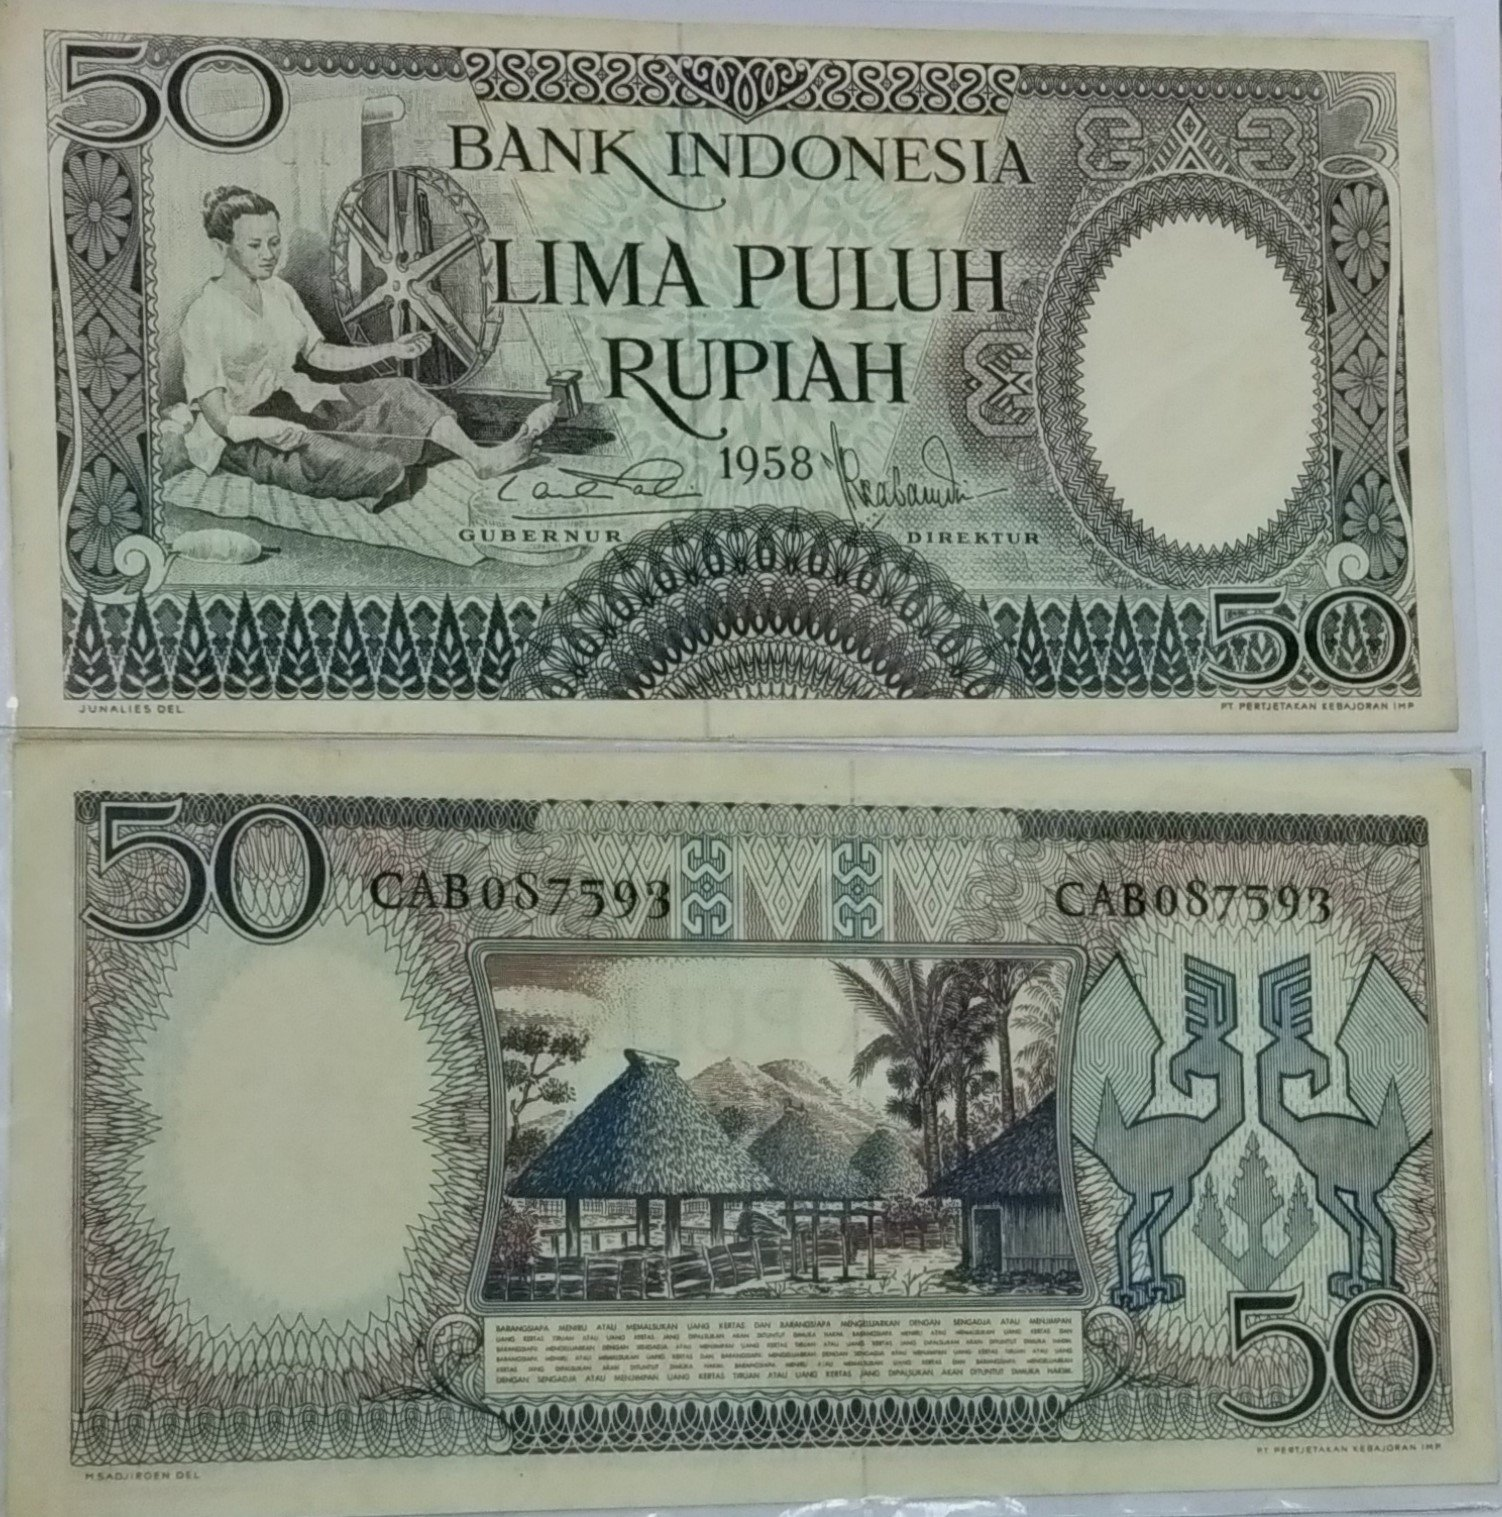 Indonesia 50 rupiah 1958 banknote for sale